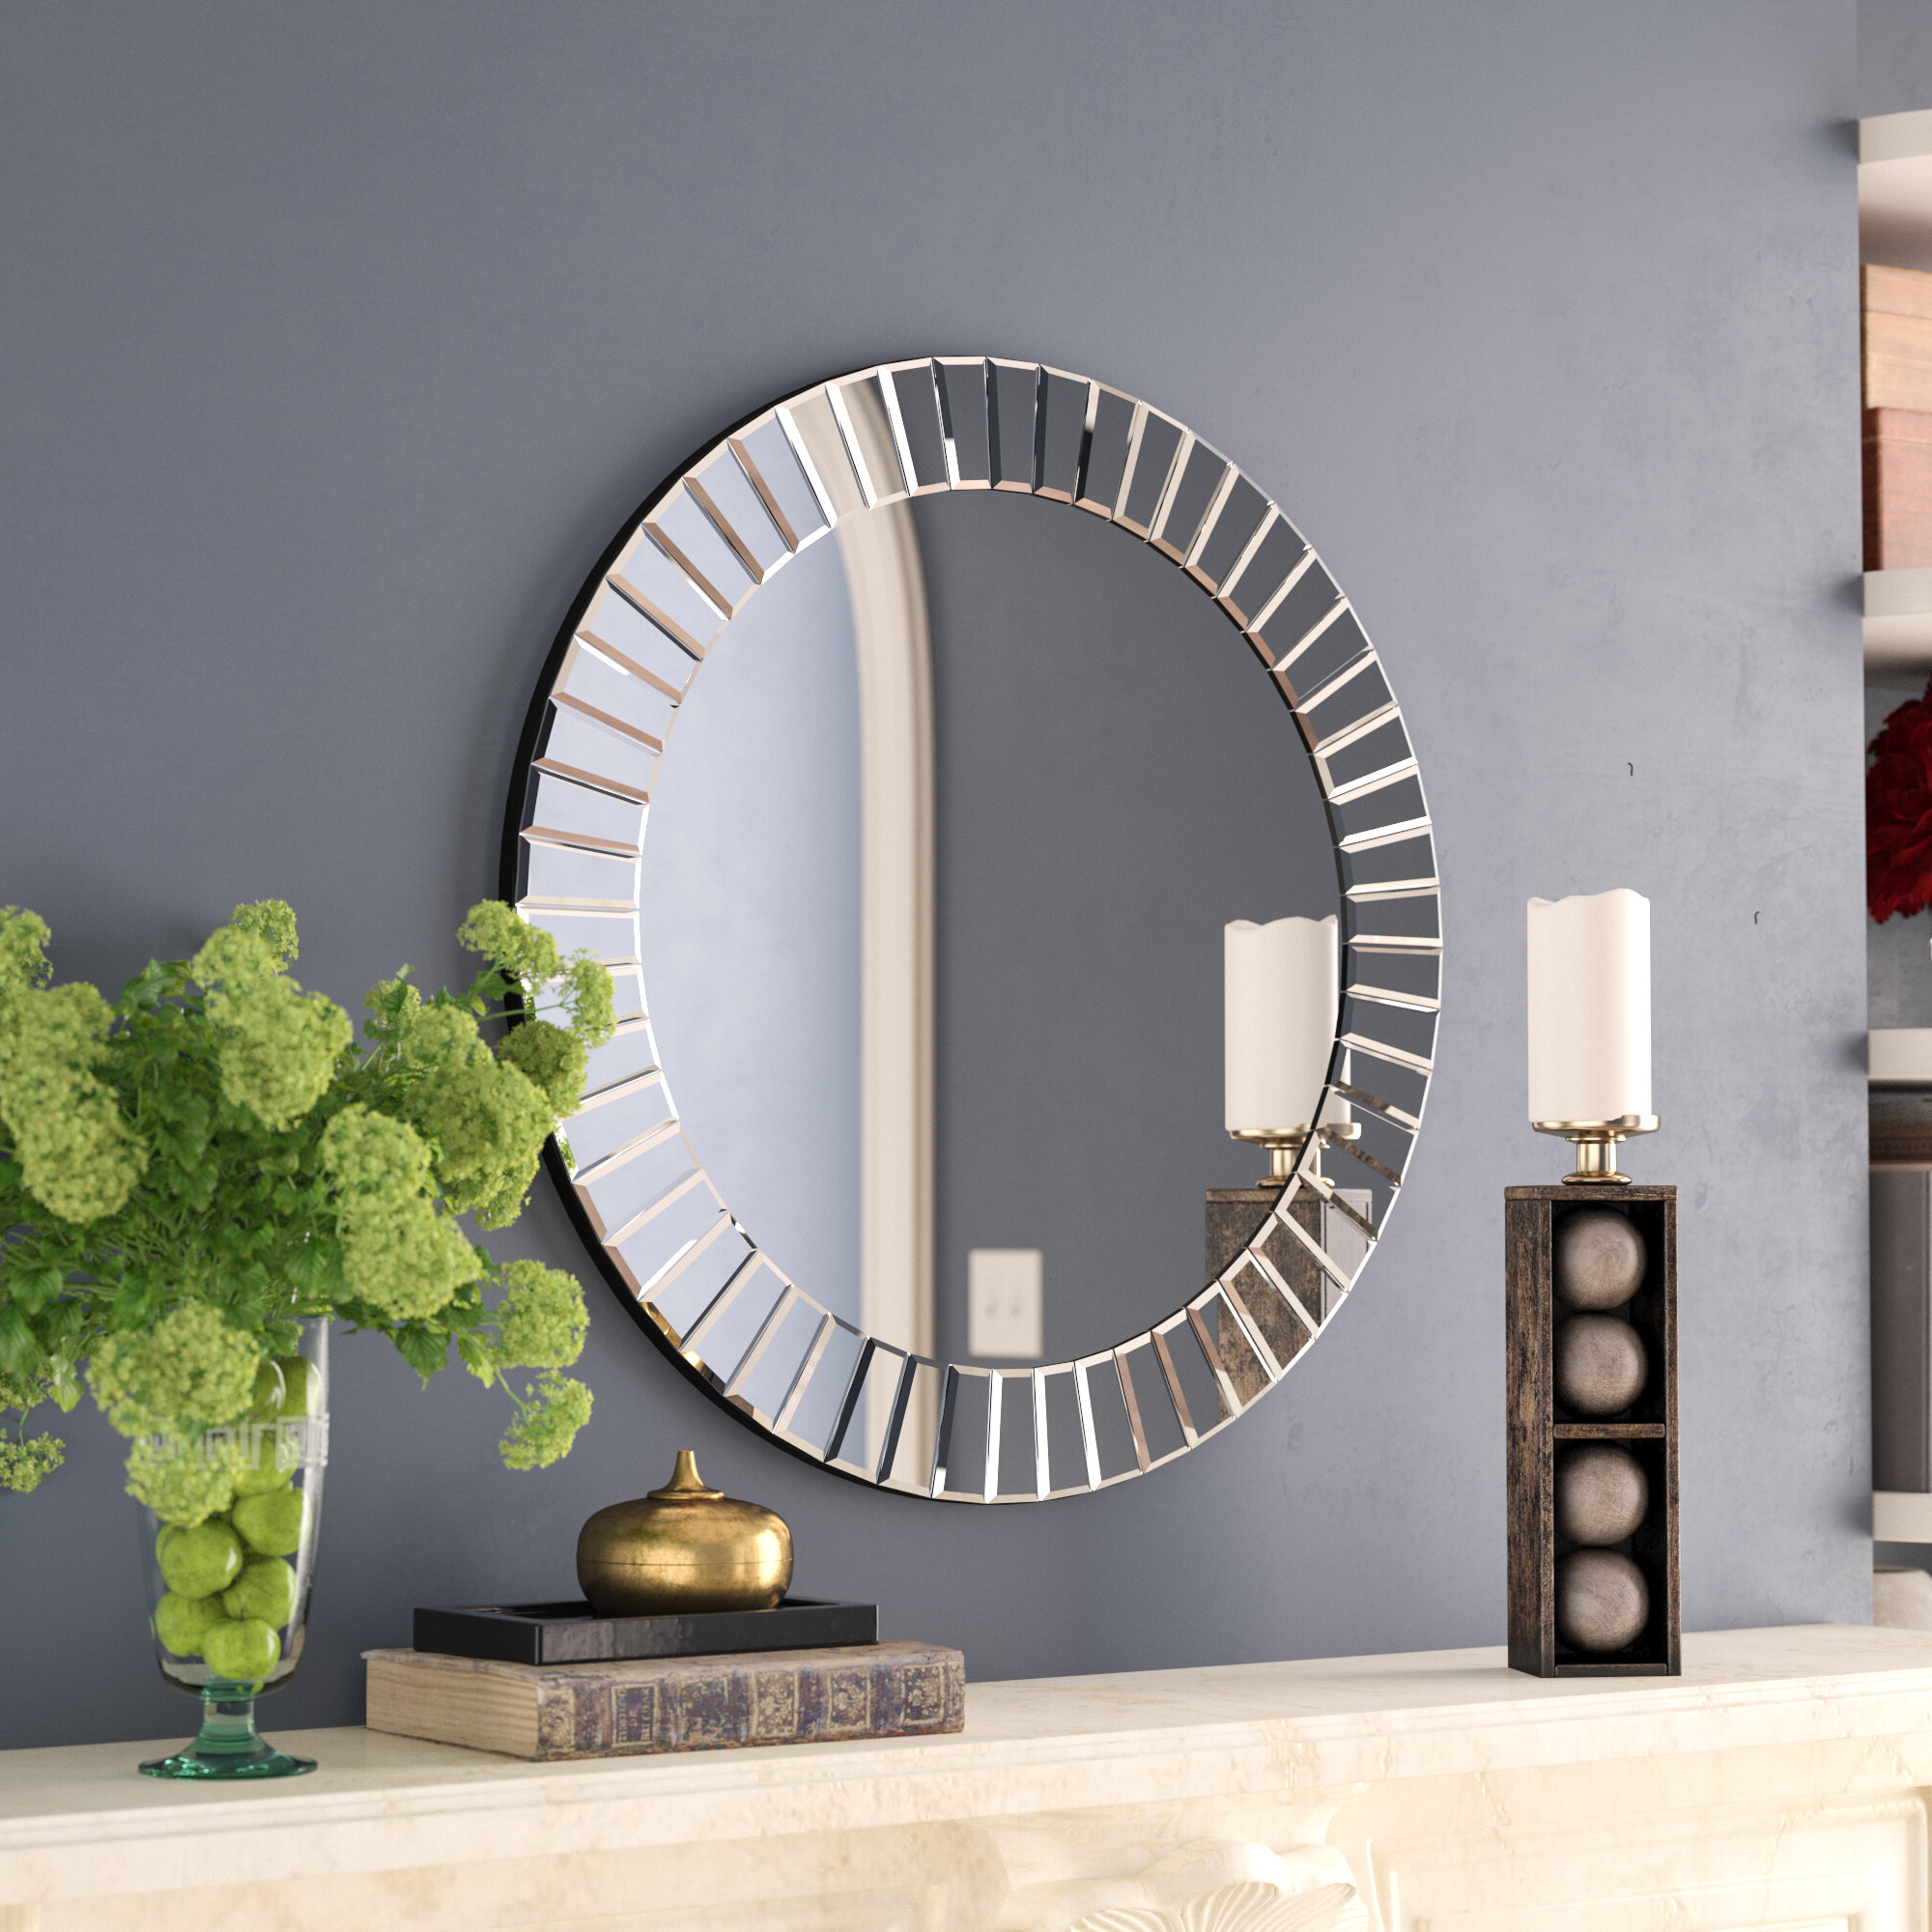 Popular Loren Round Wall Mirror Regarding Circular Wall Mirrors (View 5 of 20)